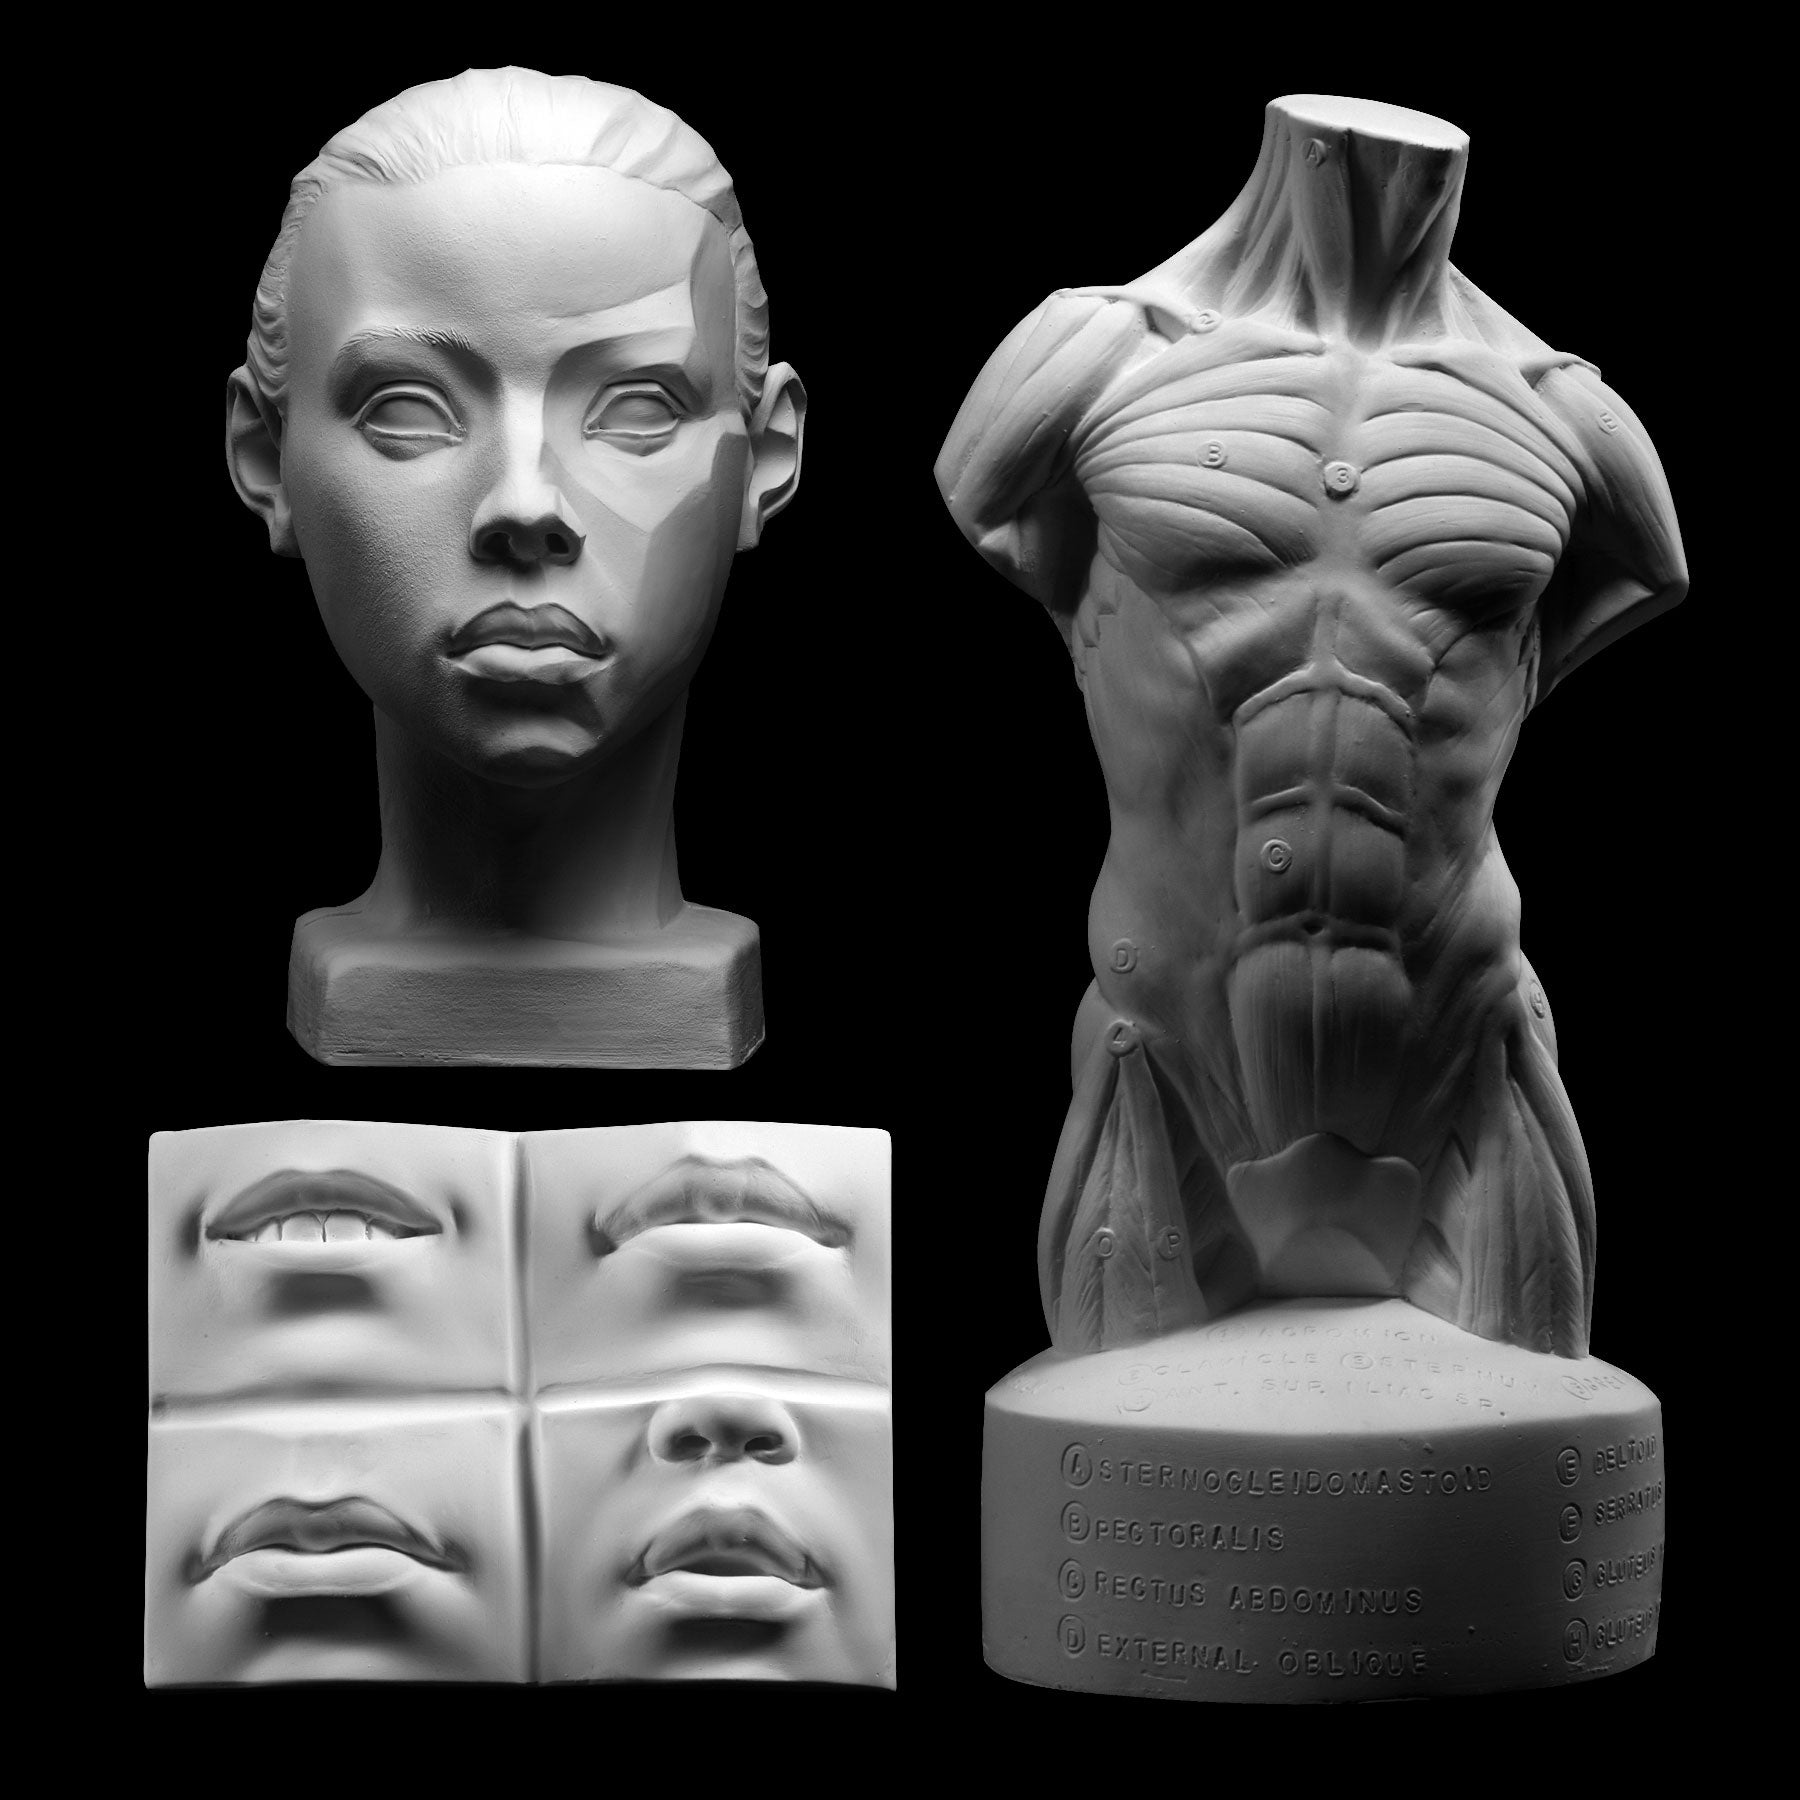 Plaster art reference casts for drawing and sculpting by Faraut